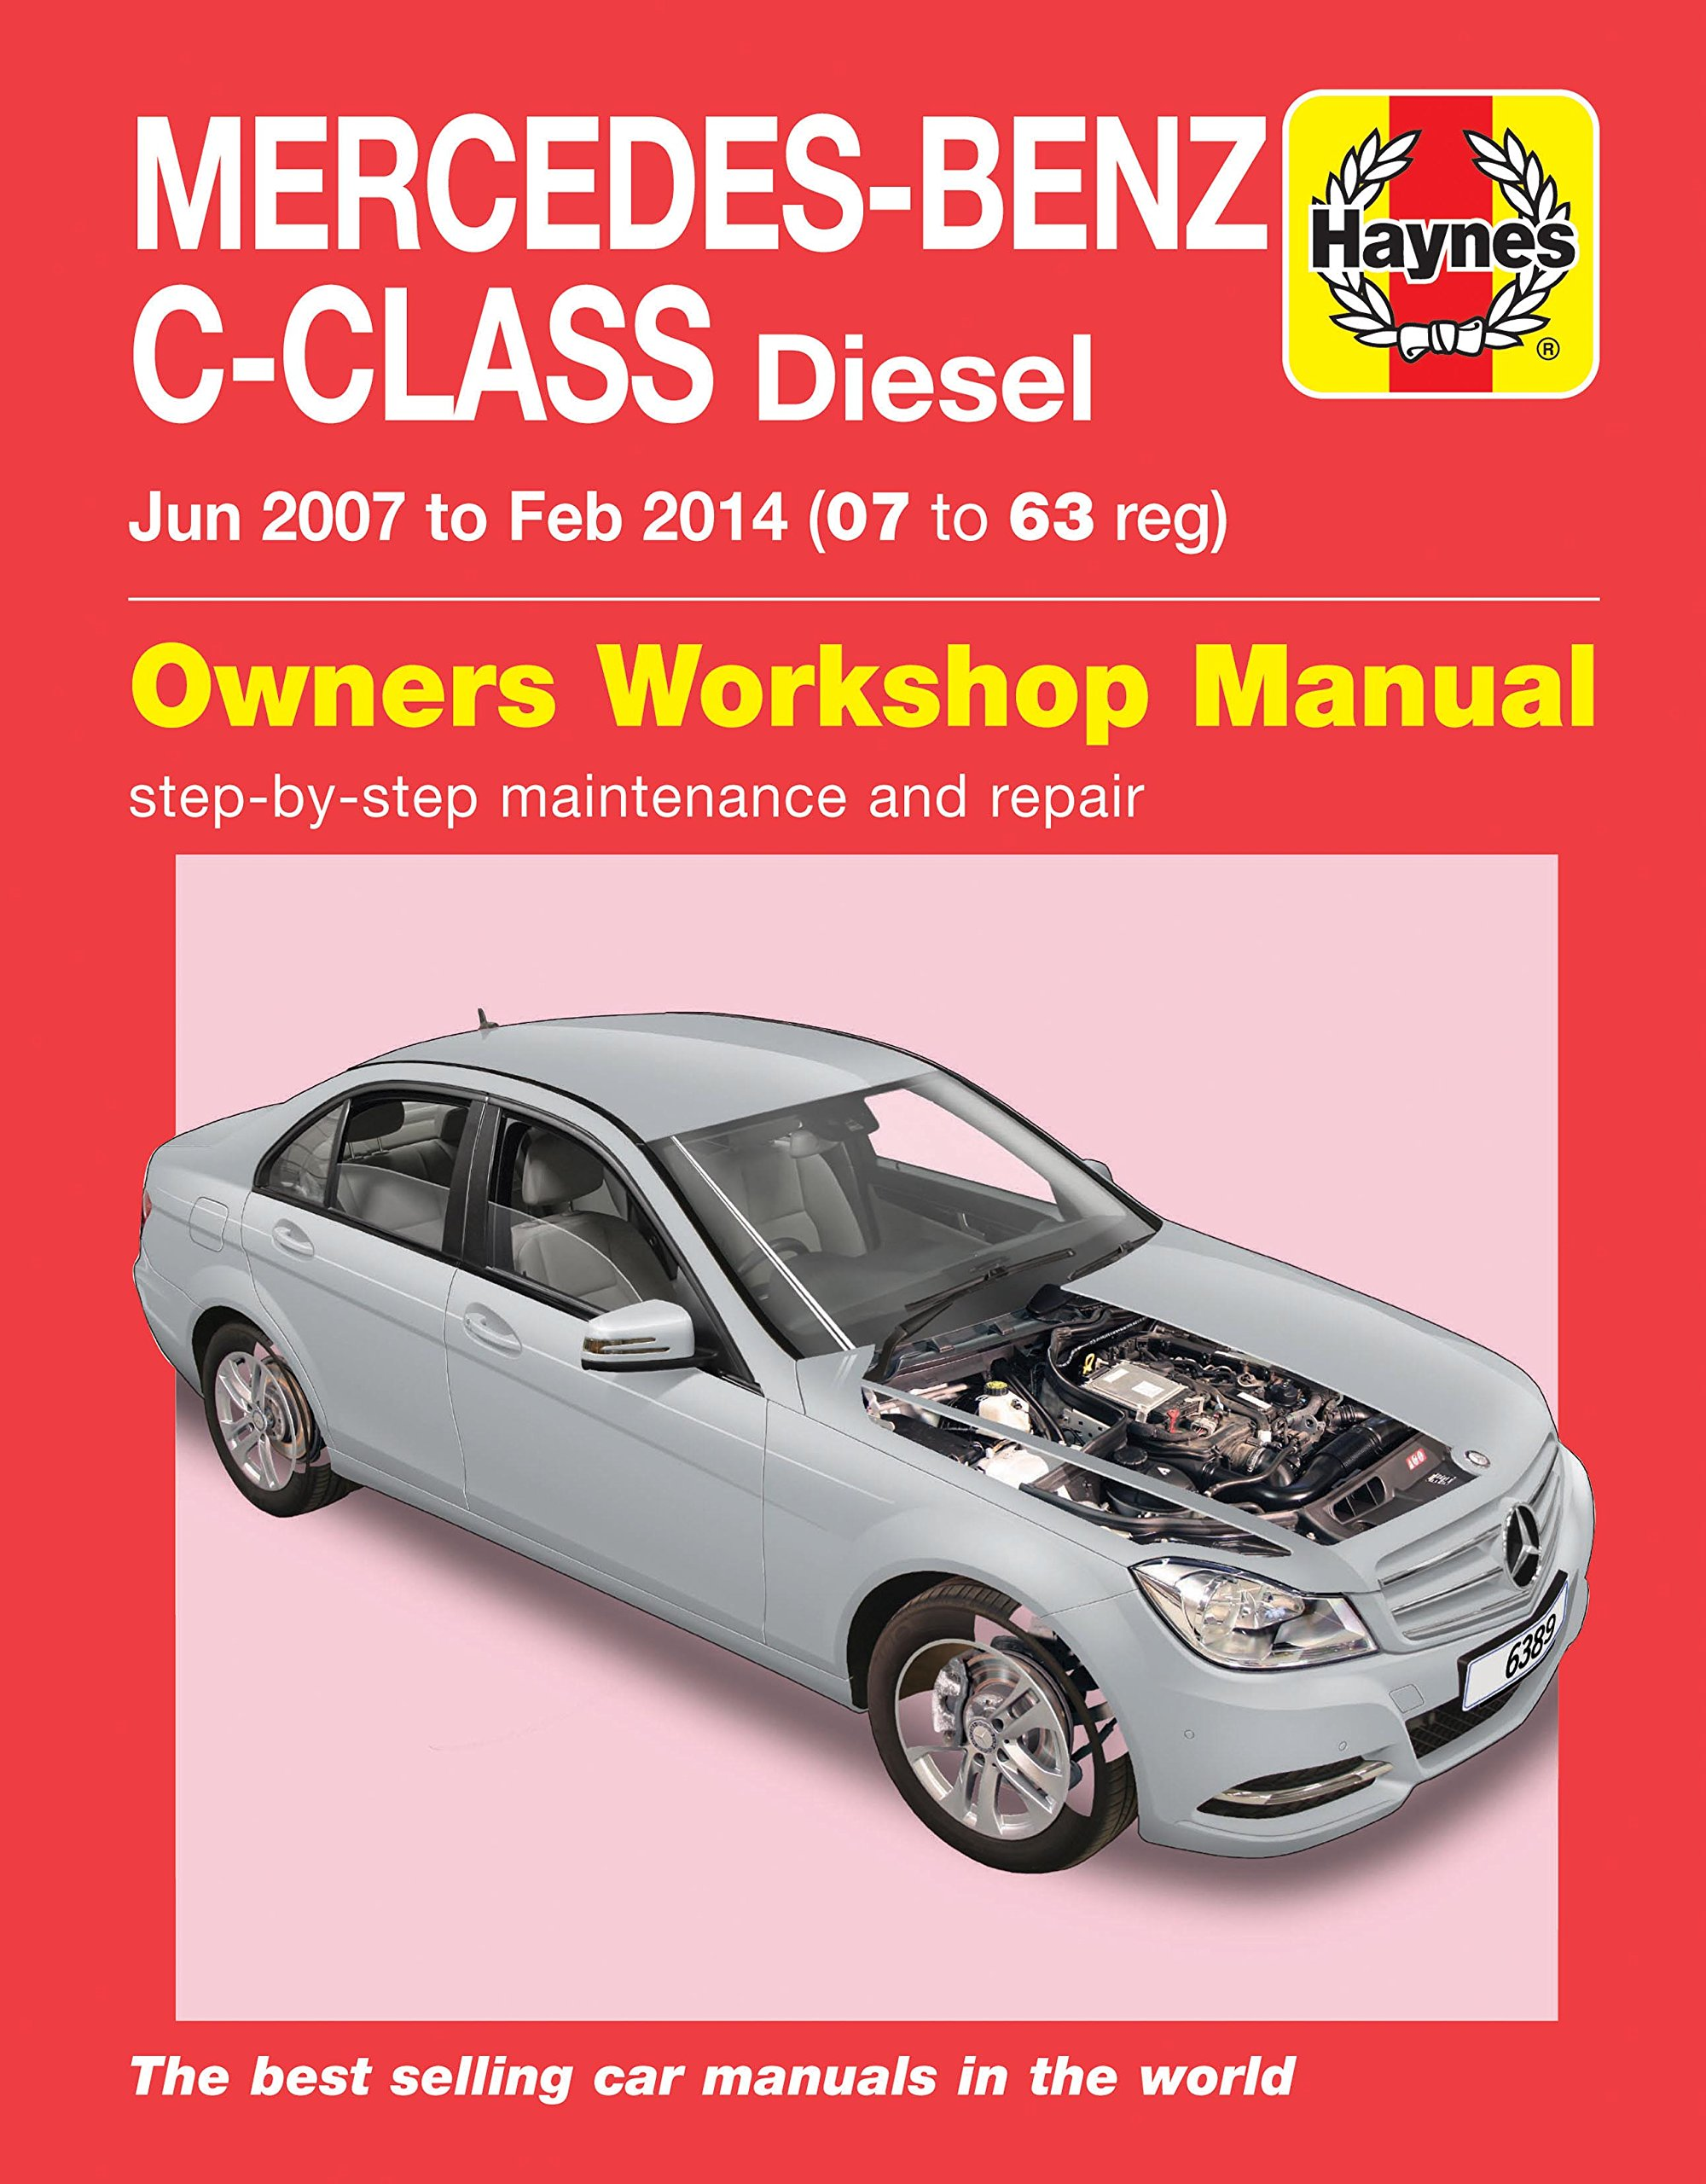 Mercedes-Benz C-Class Diesel Jun 07 - Feb 14 07 to 63 Haynes Repair Manual: Amazon.es: Martynn Randall: Libros en idiomas extranjeros